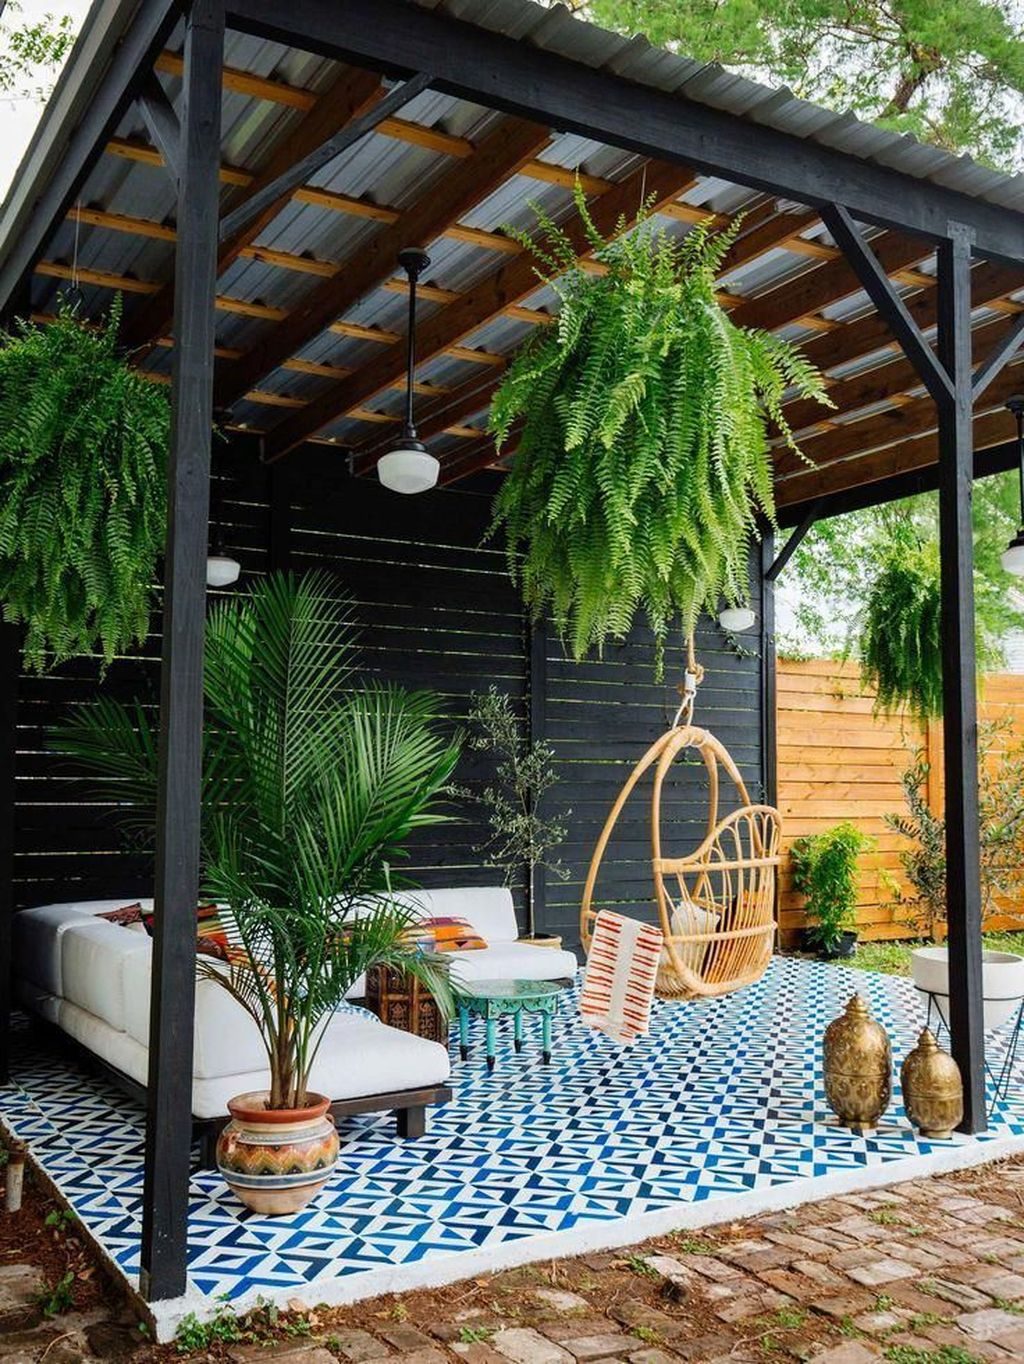 Admirable Cozy Patio Design Ideas To Relaxing On A Sunny Day 25